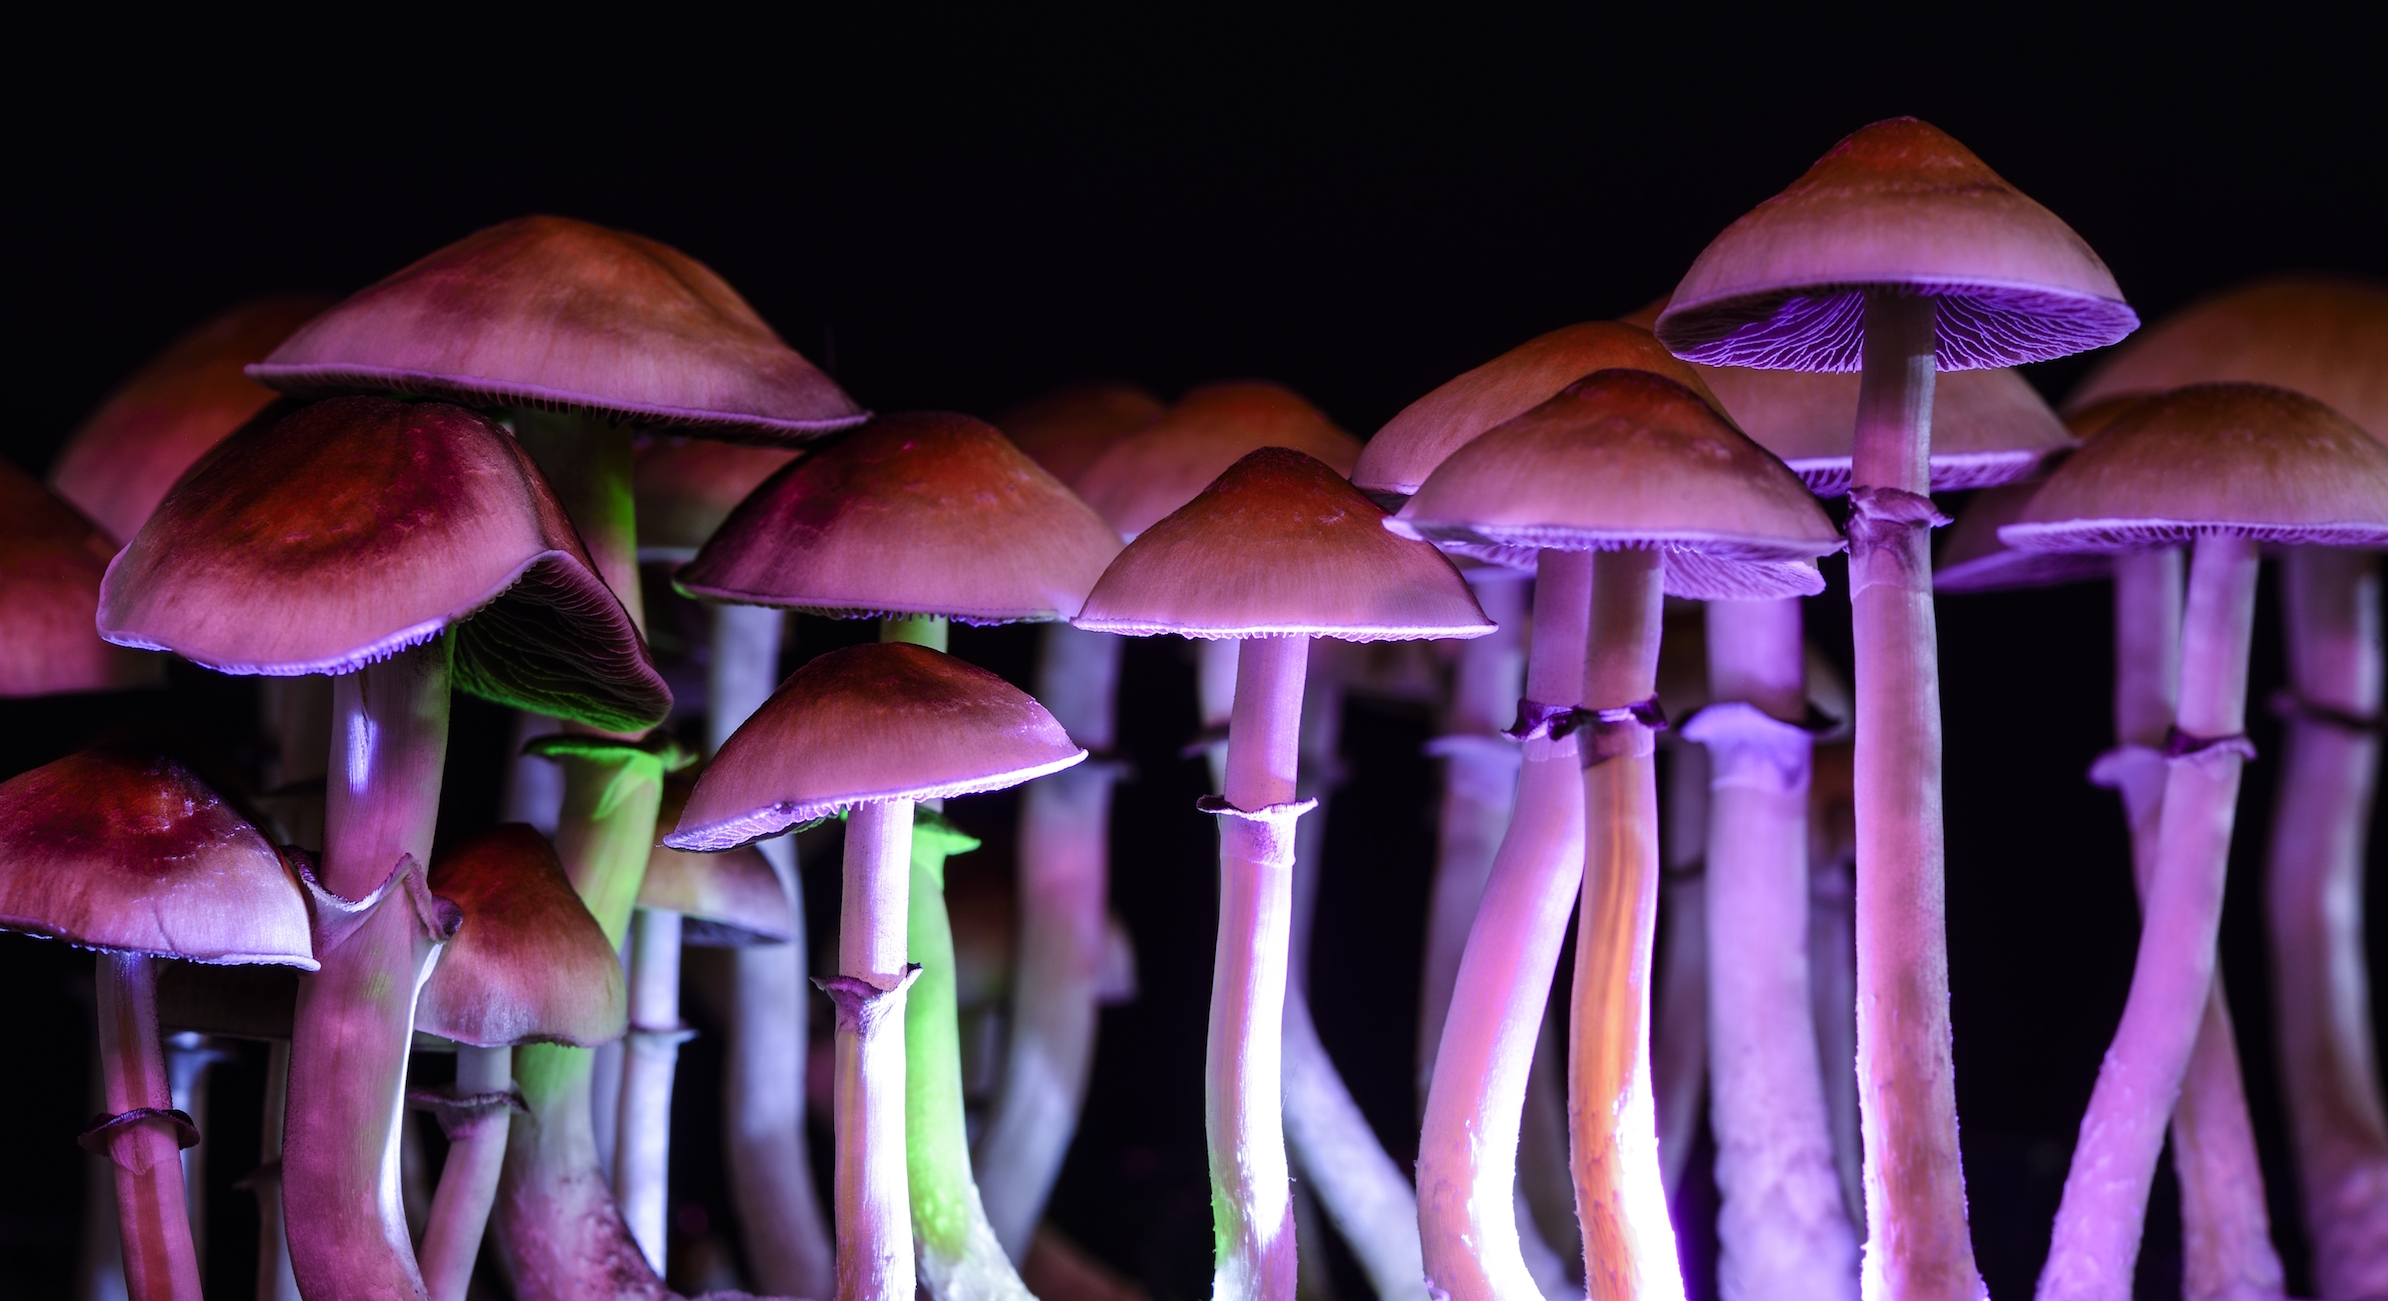 An intervention with psychedelic mushrooms may help some people overcome their tobacco addiction, according to a new study.